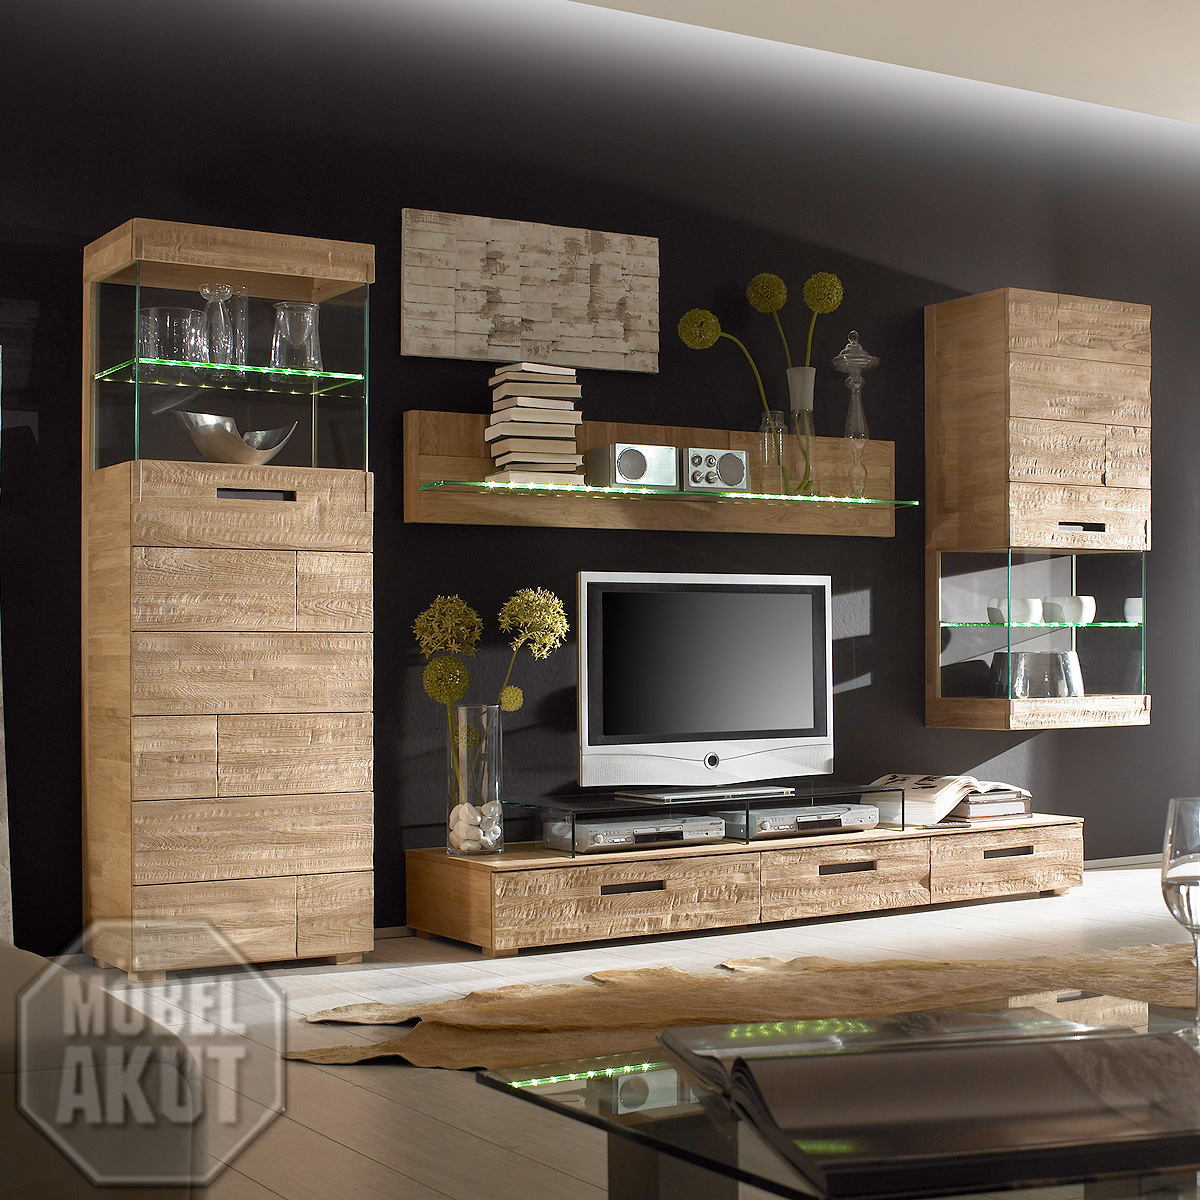 wohnwand ii amor anbauwand schrank fronten in eiche spaltholz massiv neu ebay. Black Bedroom Furniture Sets. Home Design Ideas